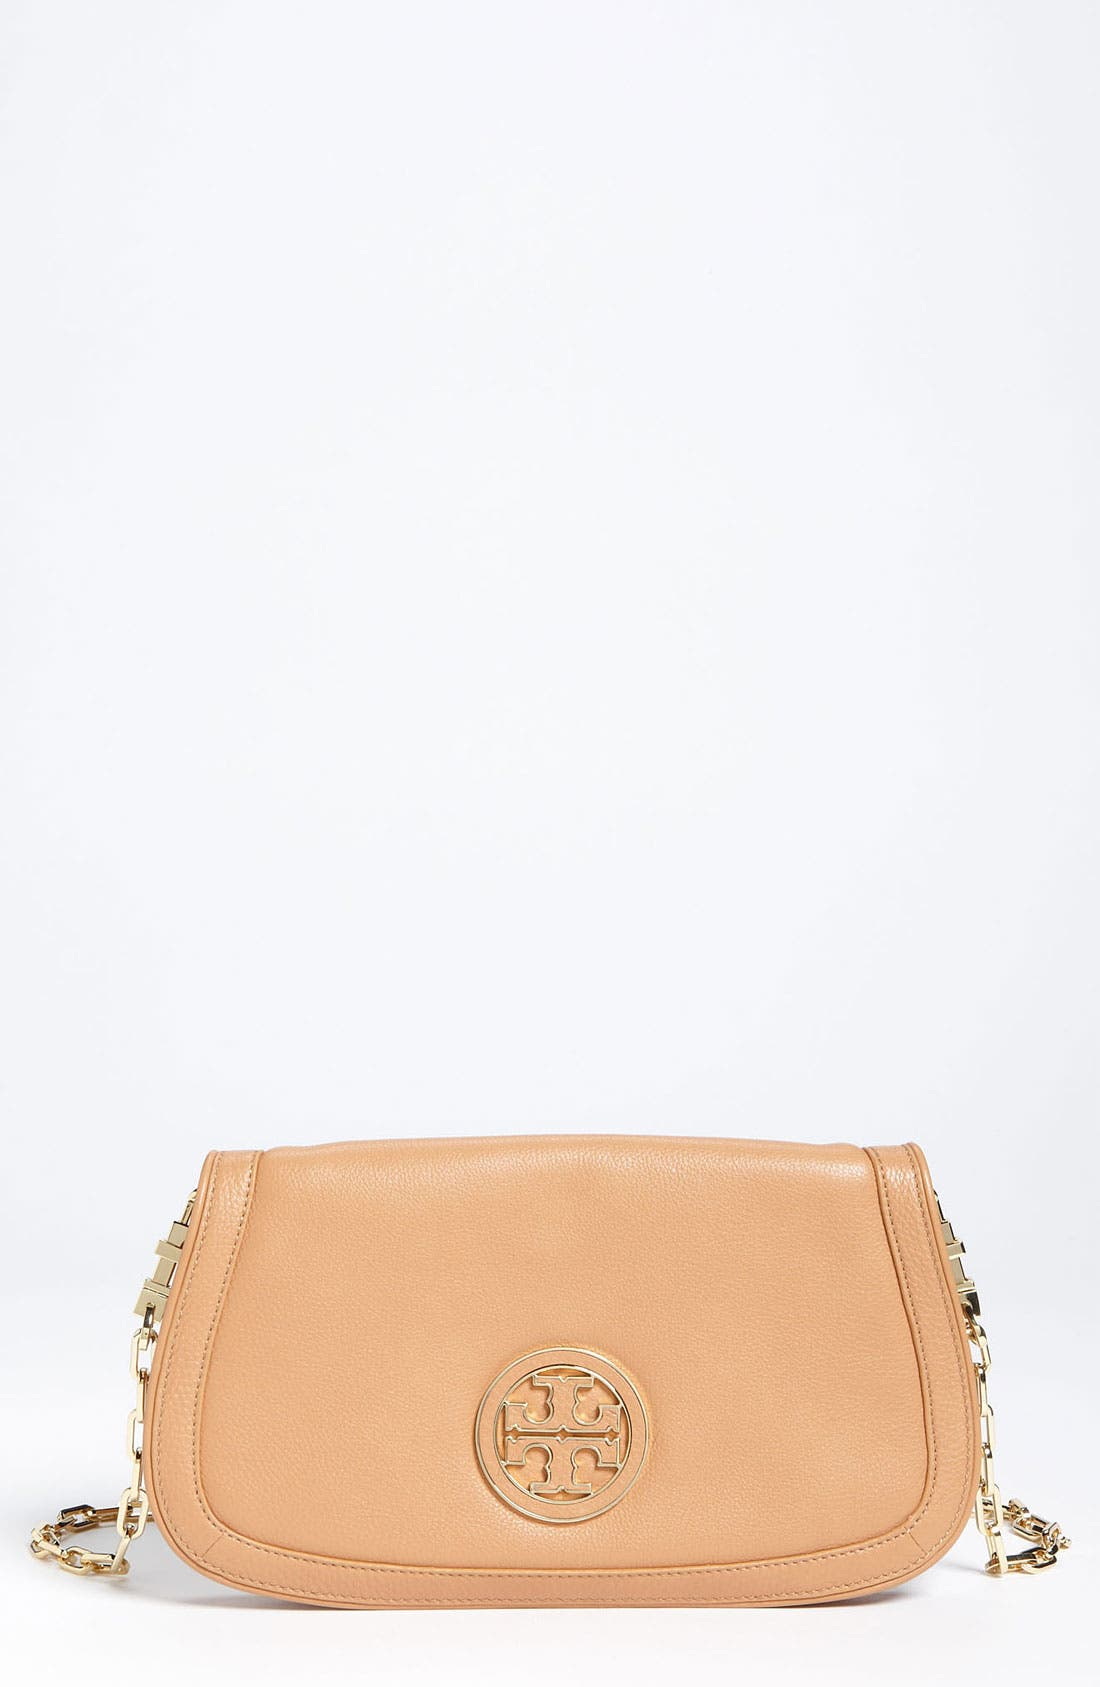 Main Image - Tory Burch 'Amanda - Angelux Logo' Clutch